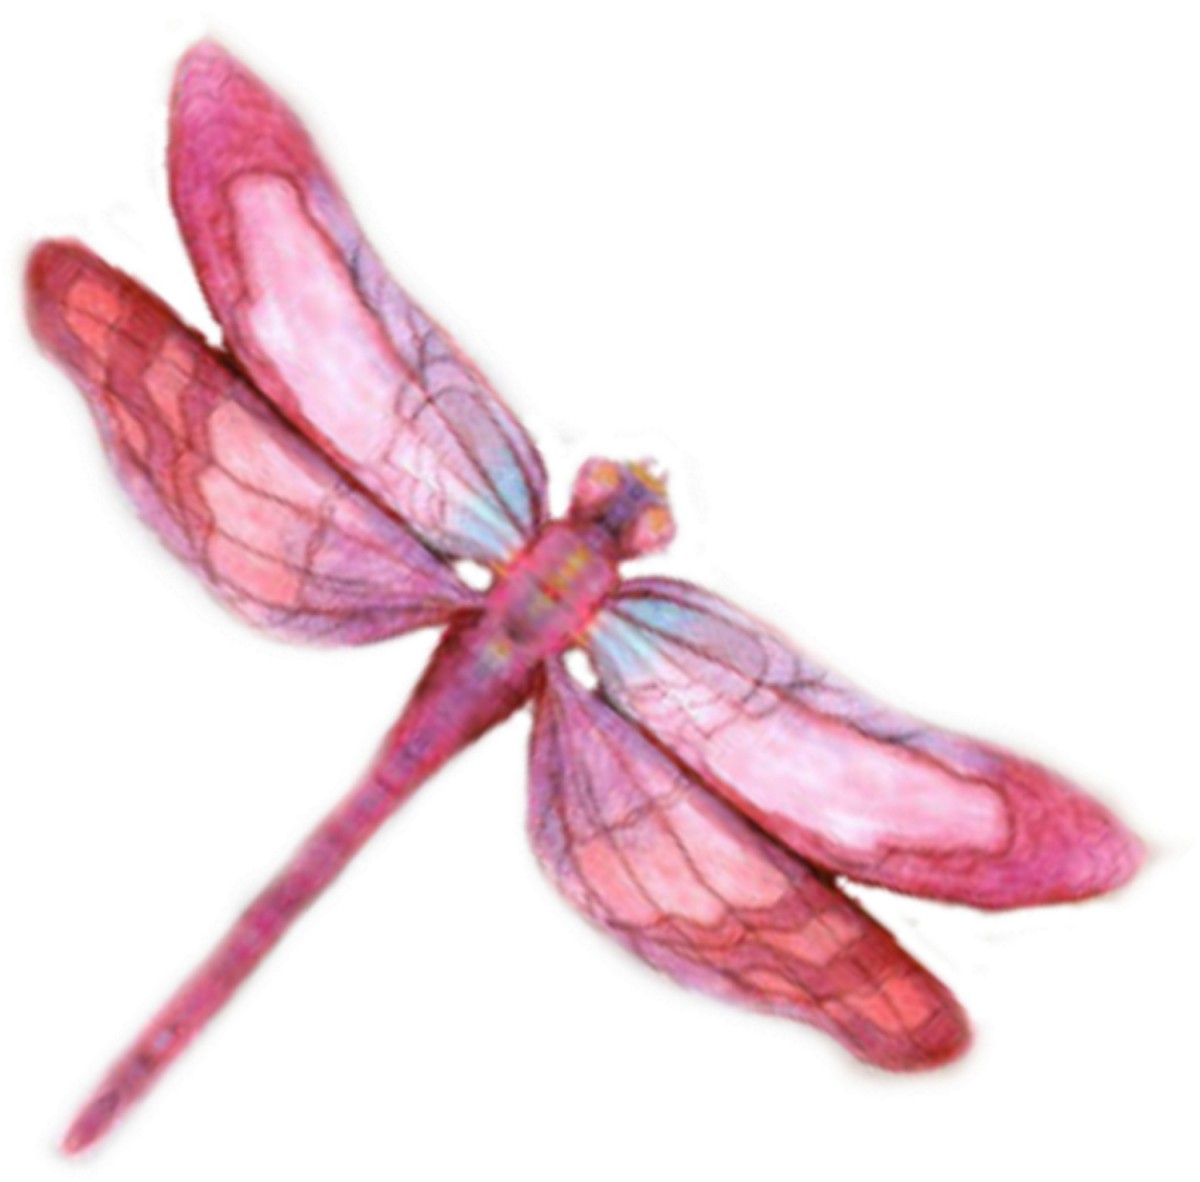 Our Fasination With Pretty Bugs - art inspired by the dragonfly and other insects